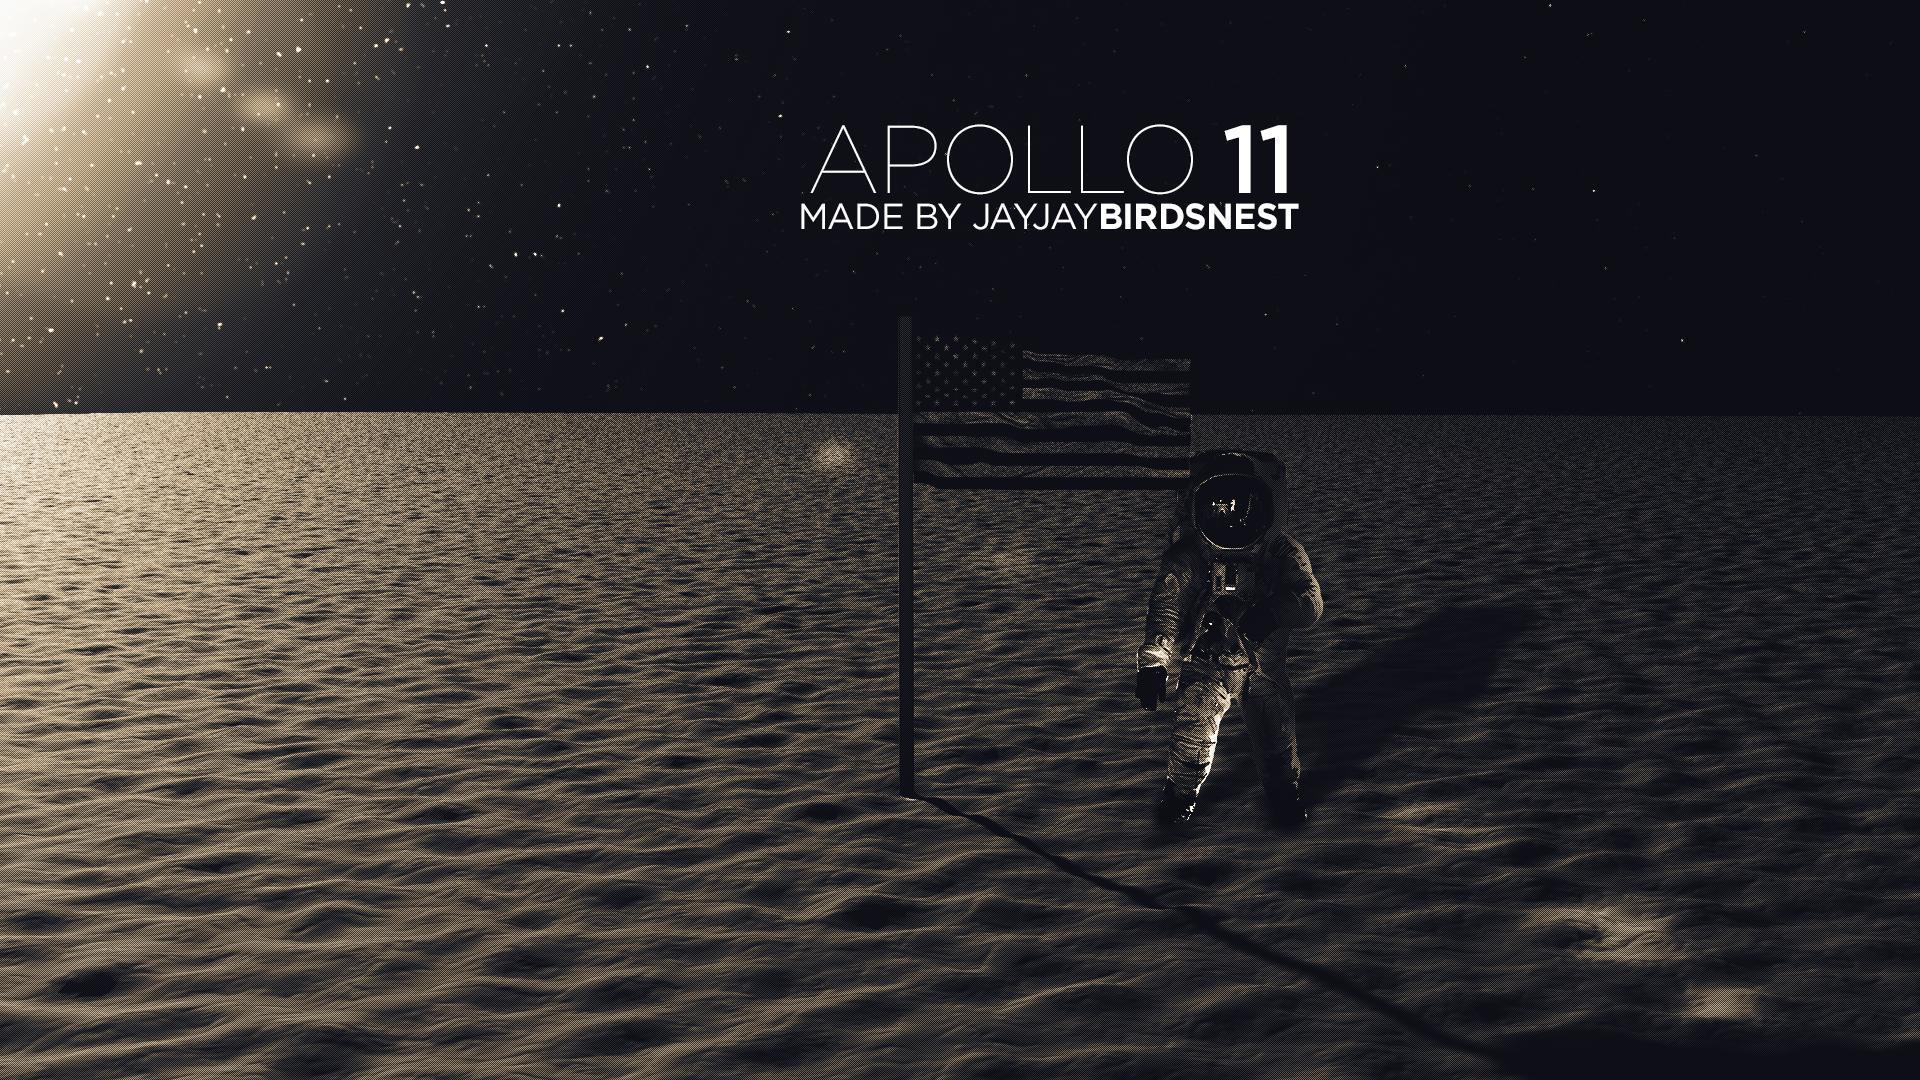 Fonds d&Apollo 11 : tous les wallpapers Apollo 11